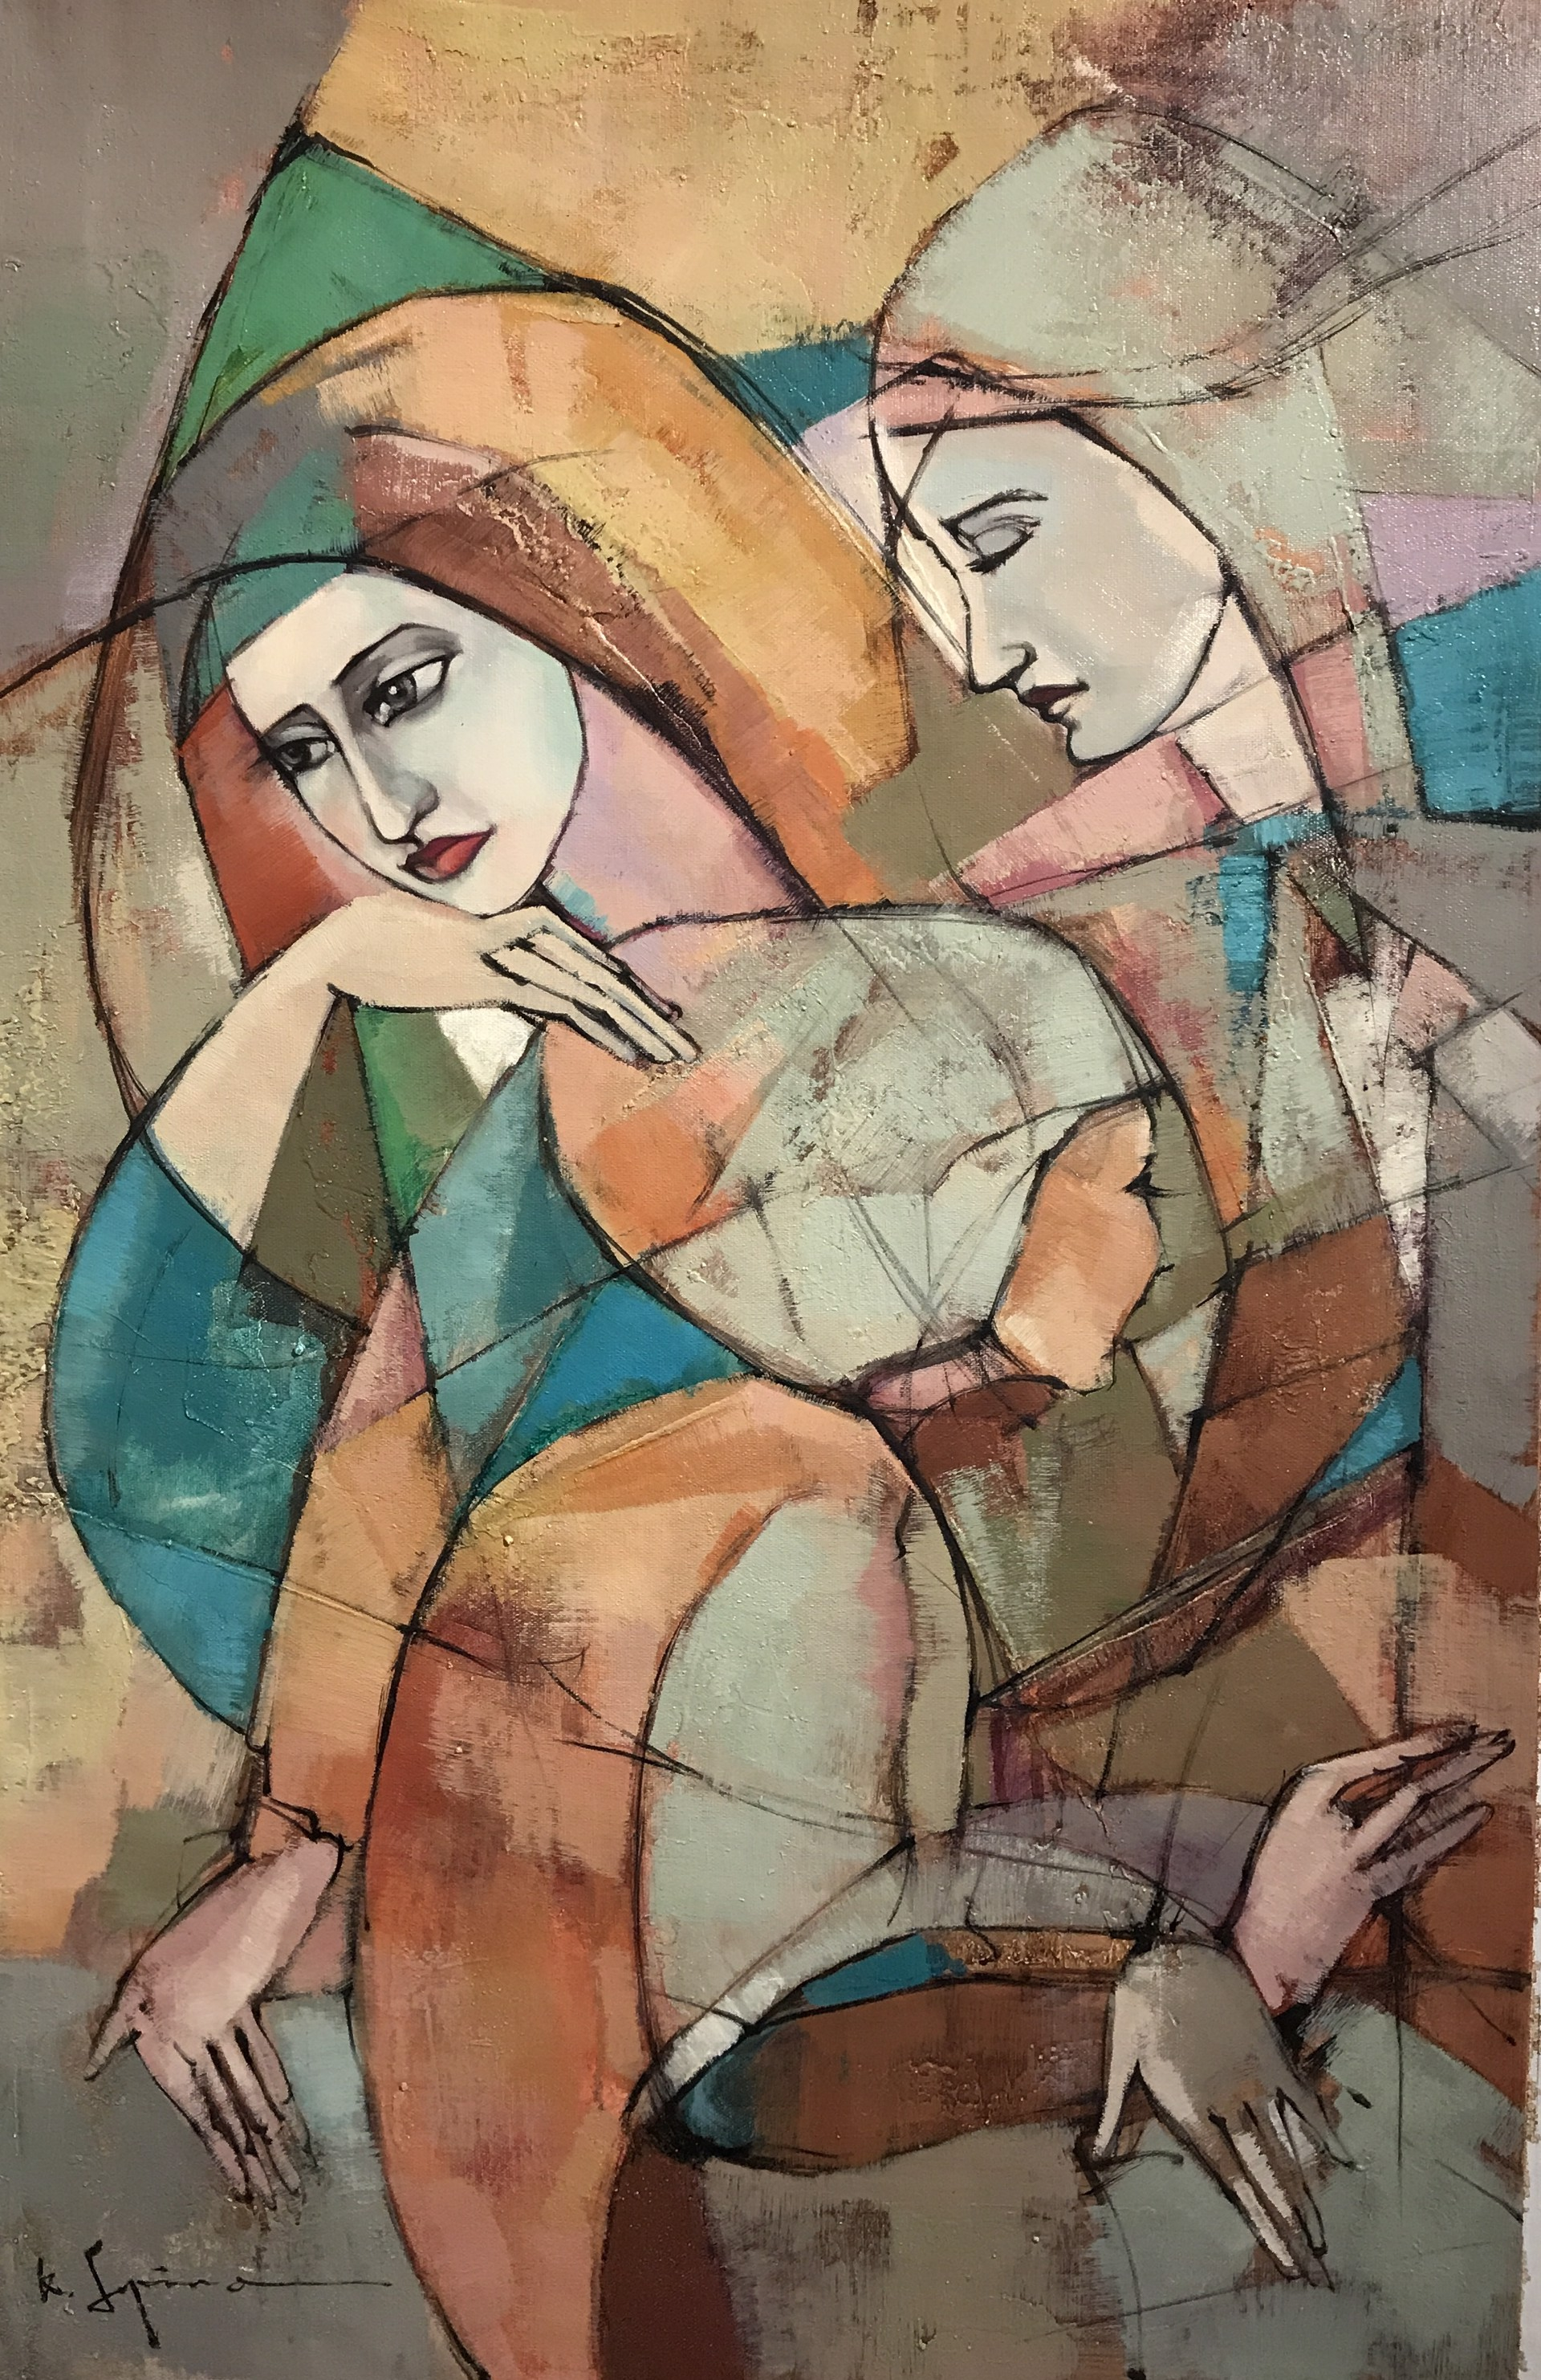 THREE LADIES by K. SOPINO